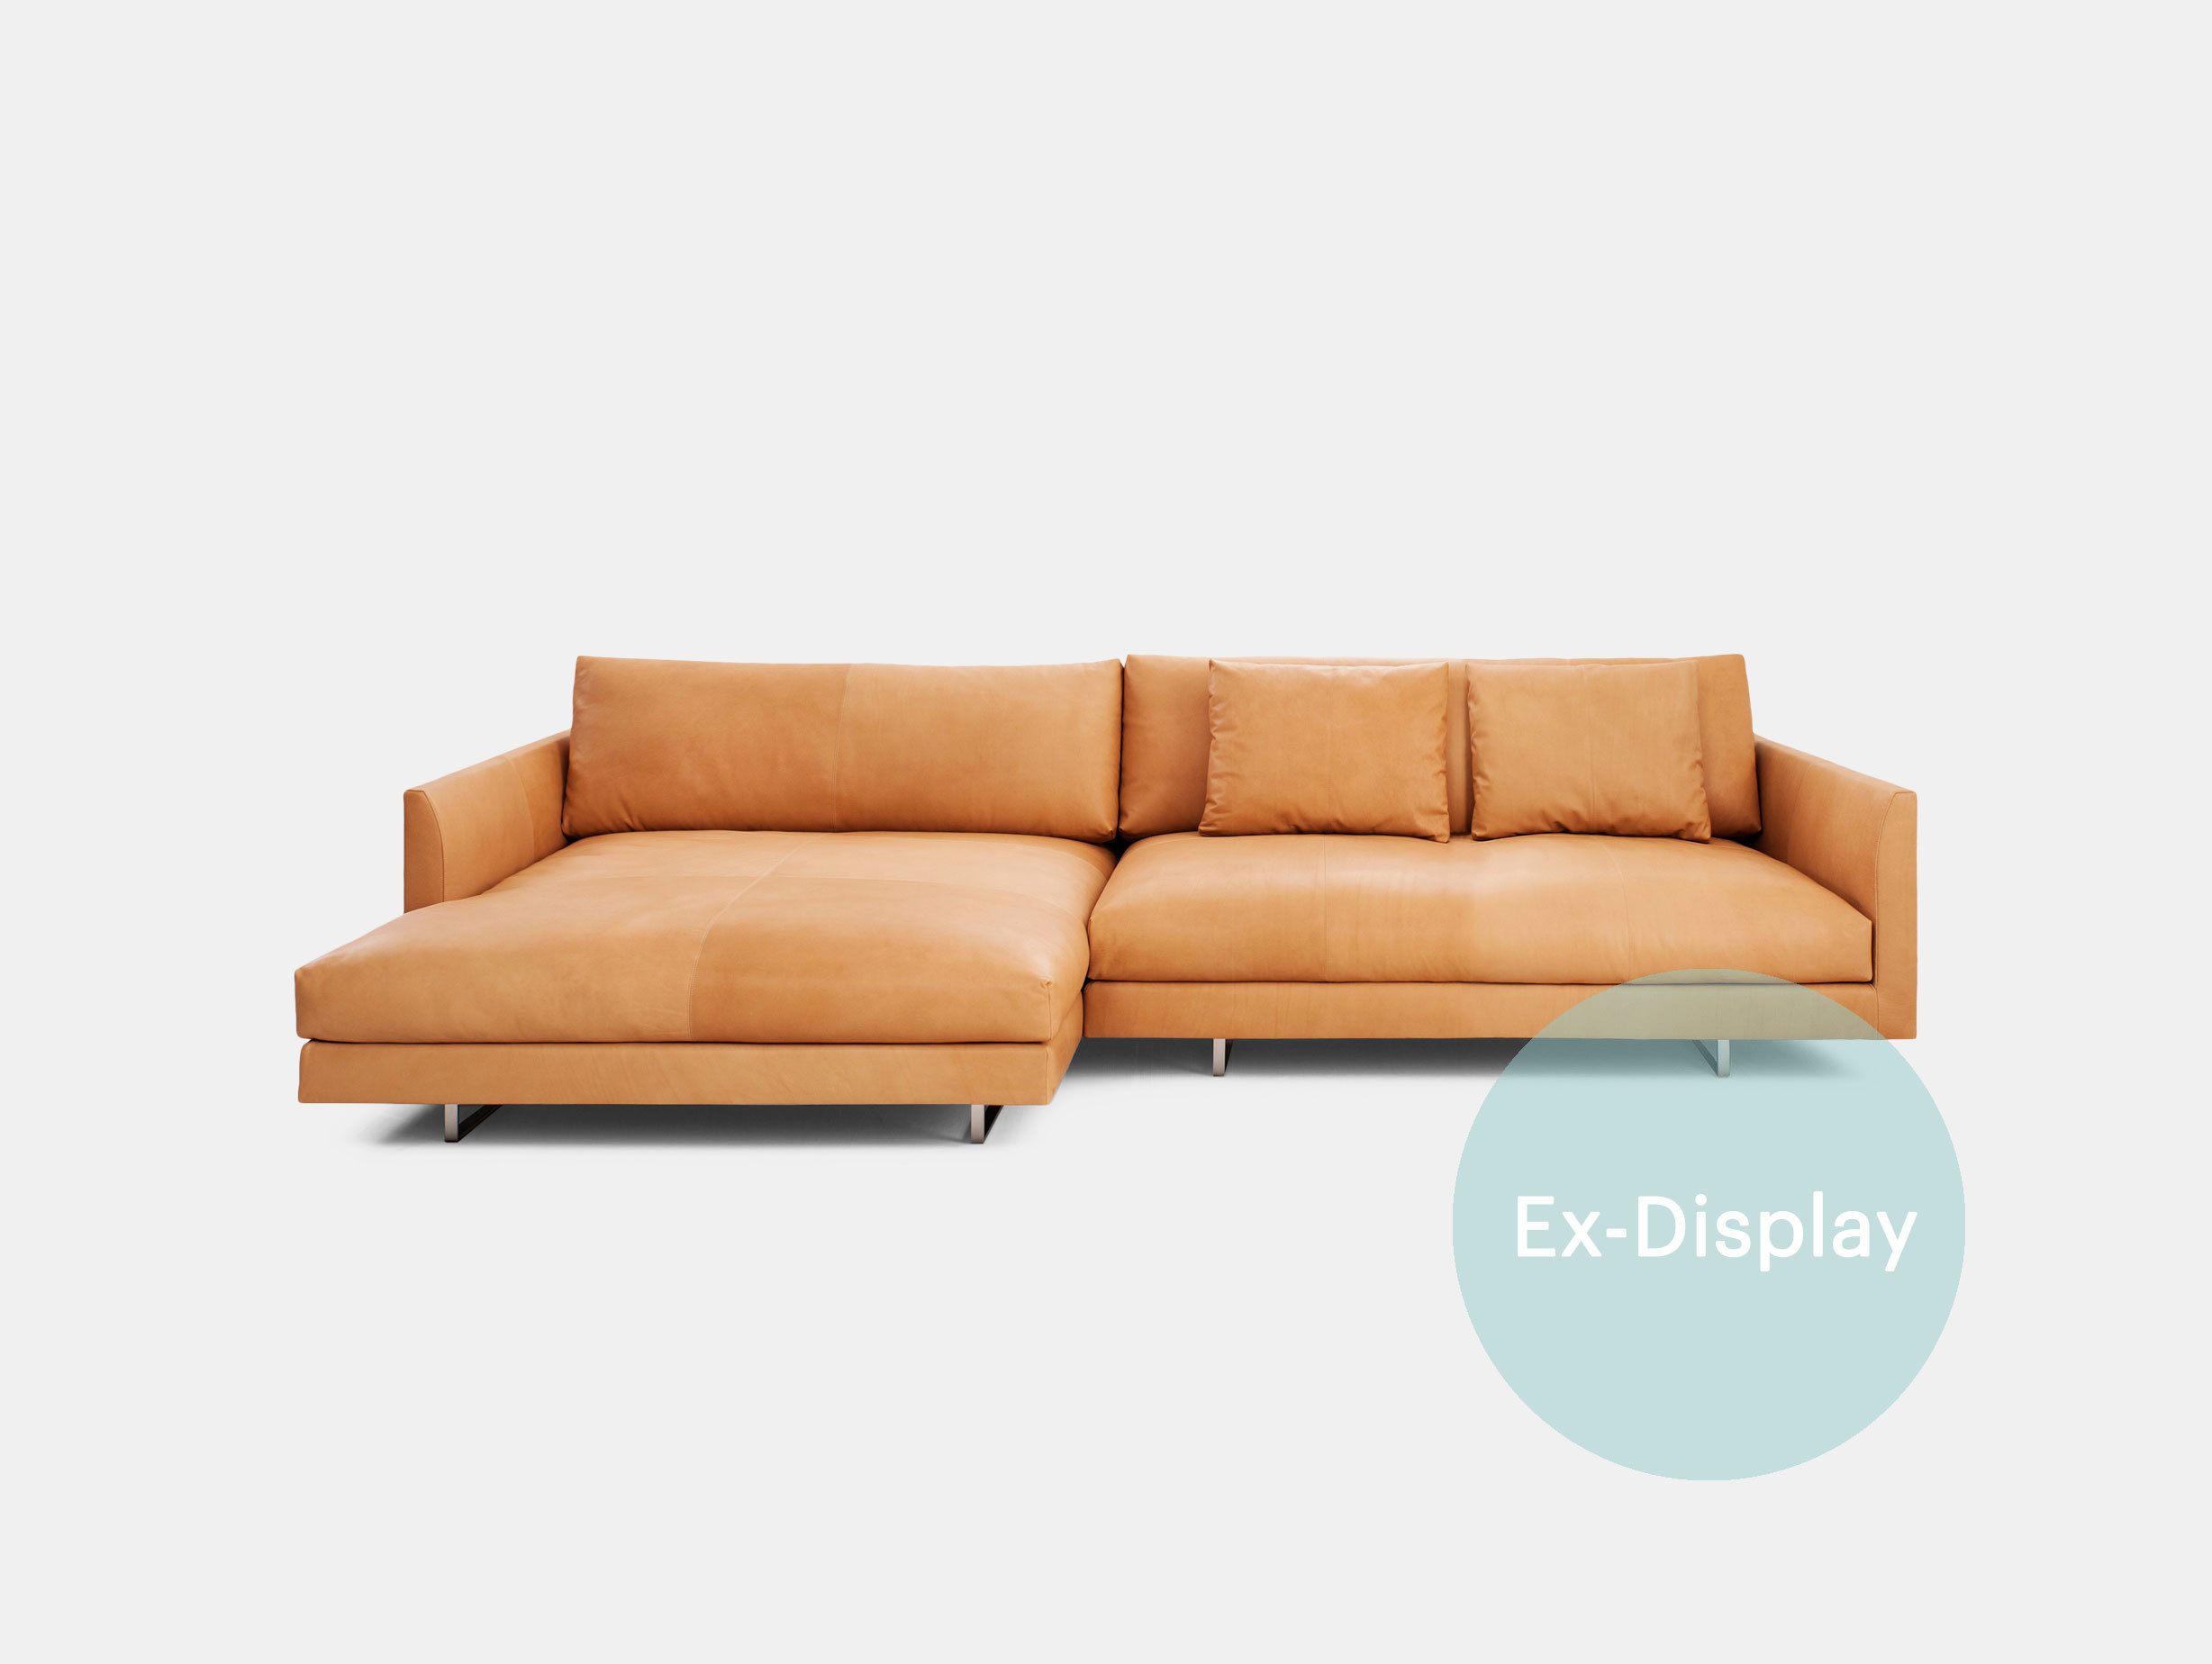 Axel XL Sofa / 55% off - SOLD image 1